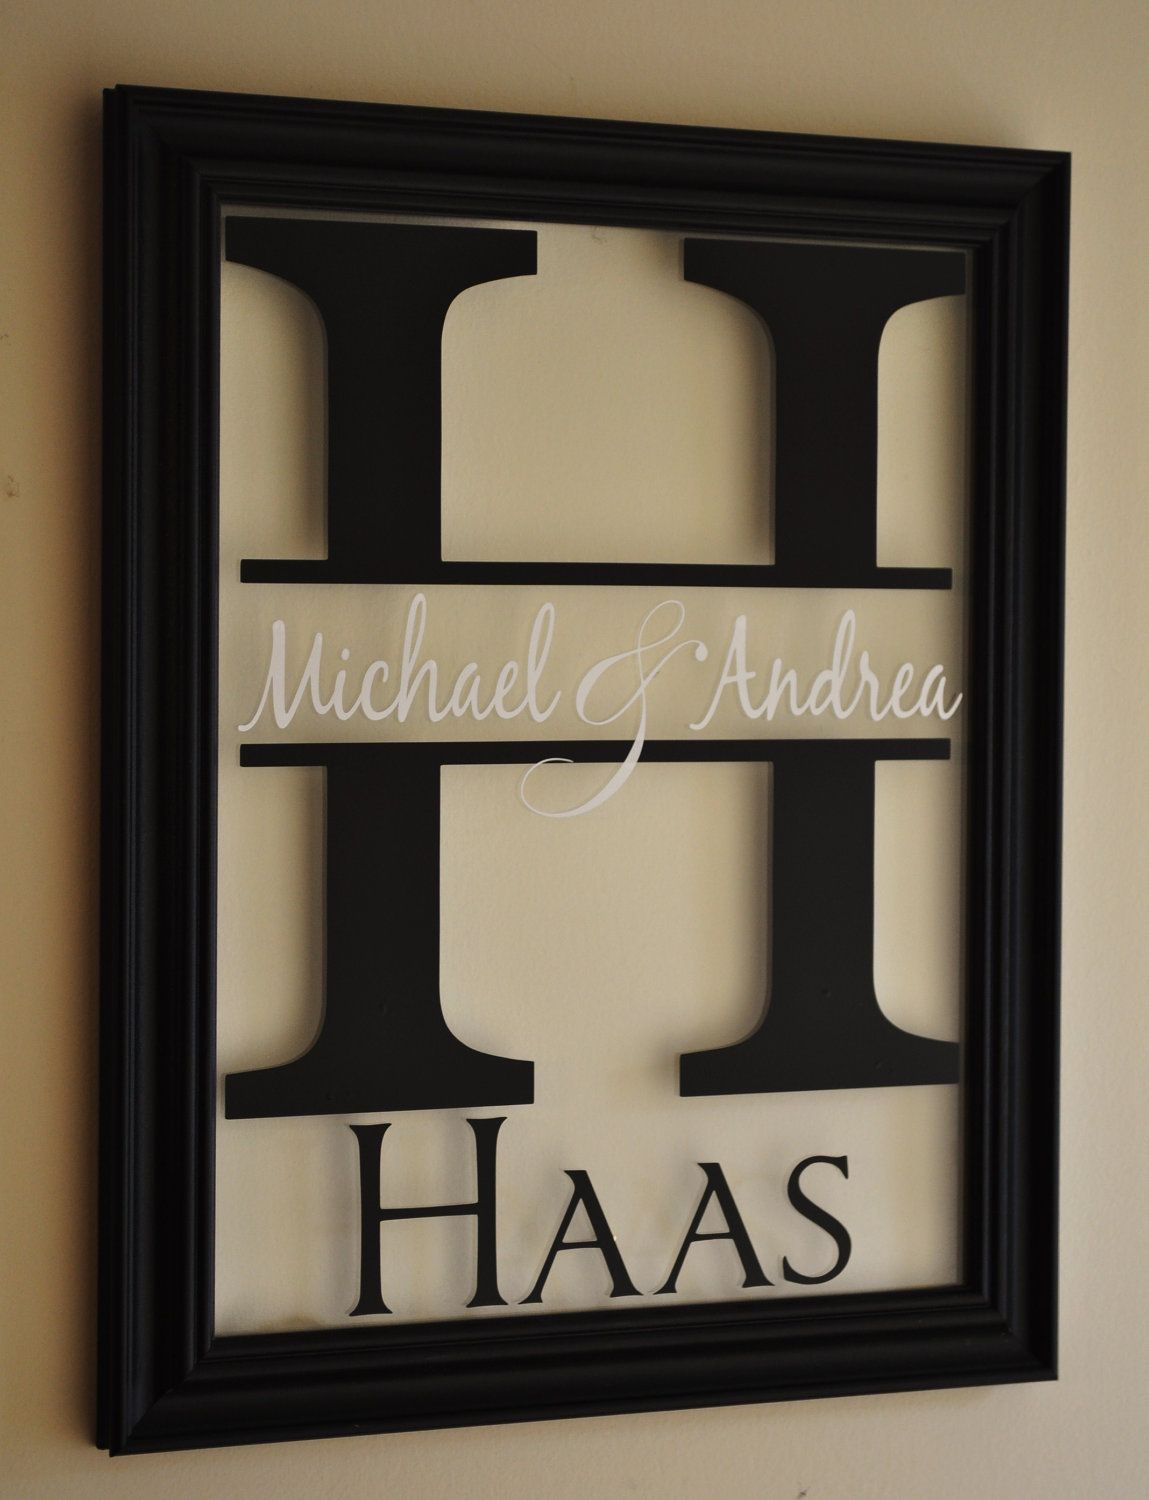 Personalized Family Name Sign Picture Frame Wall 13x16 Overall Size By Mrcwoodproducts On Etsy